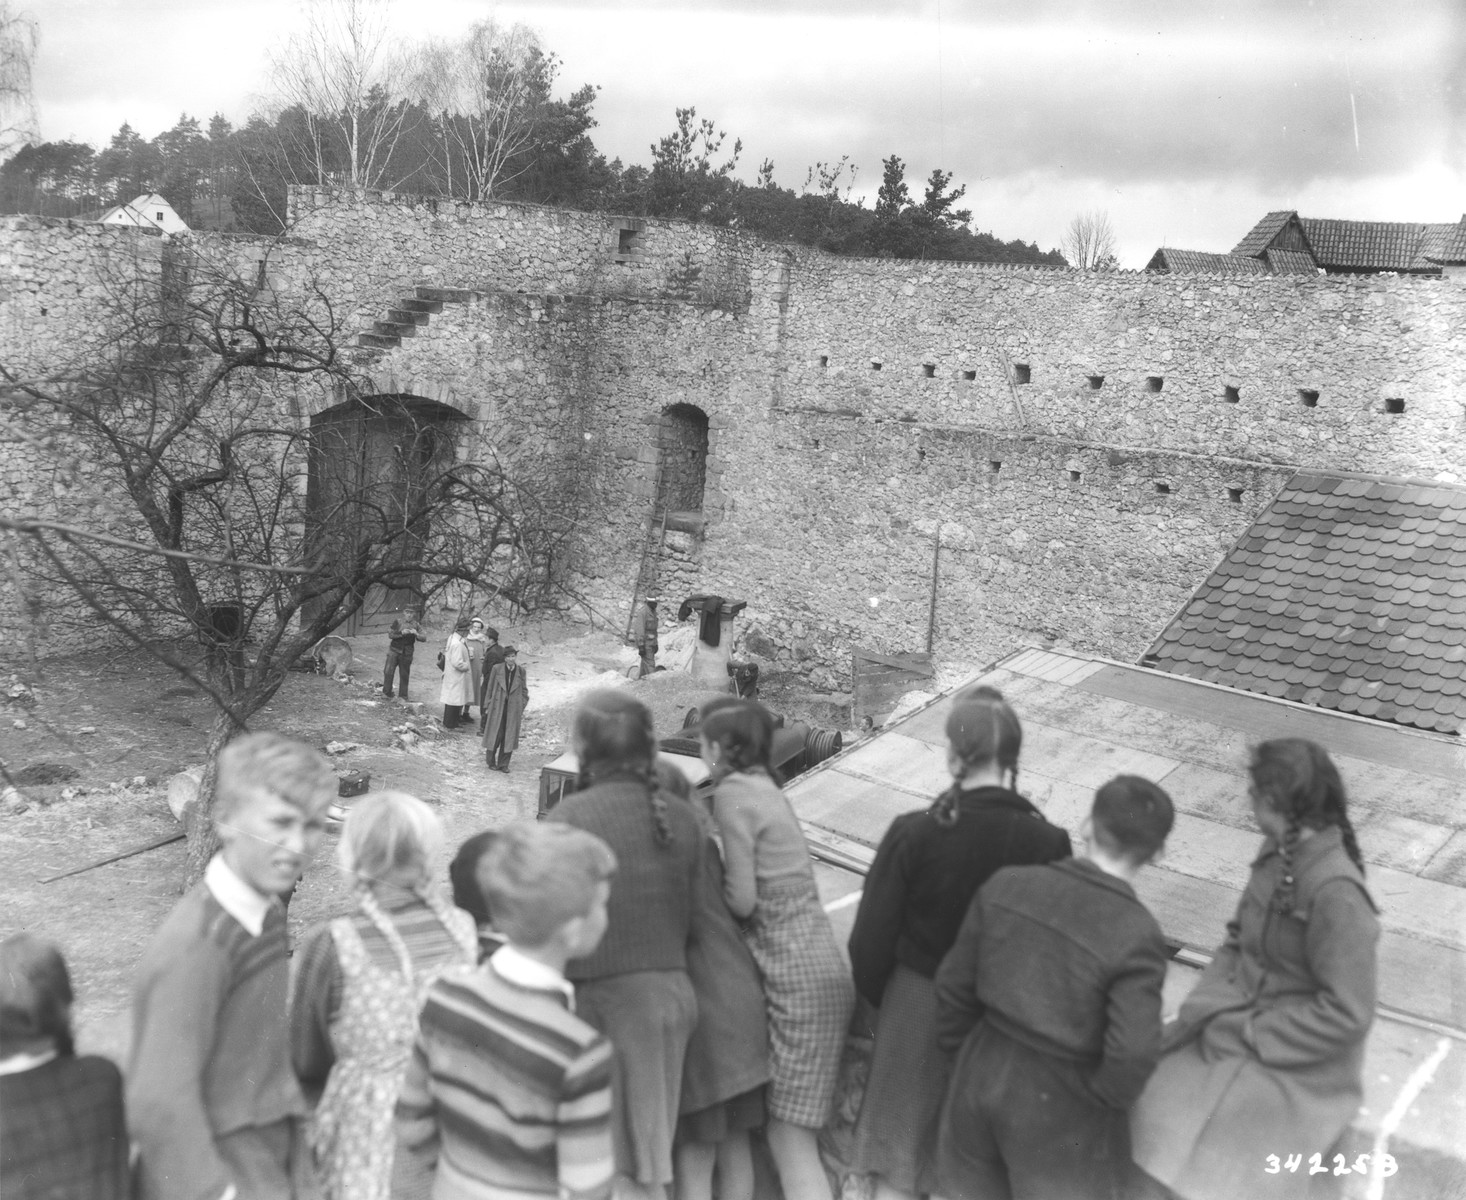 Displaced children who are being housed in Veldenstein castle, formerly owned by Hermann Goering, watch as German workers search for property looted by the Nazi regime.